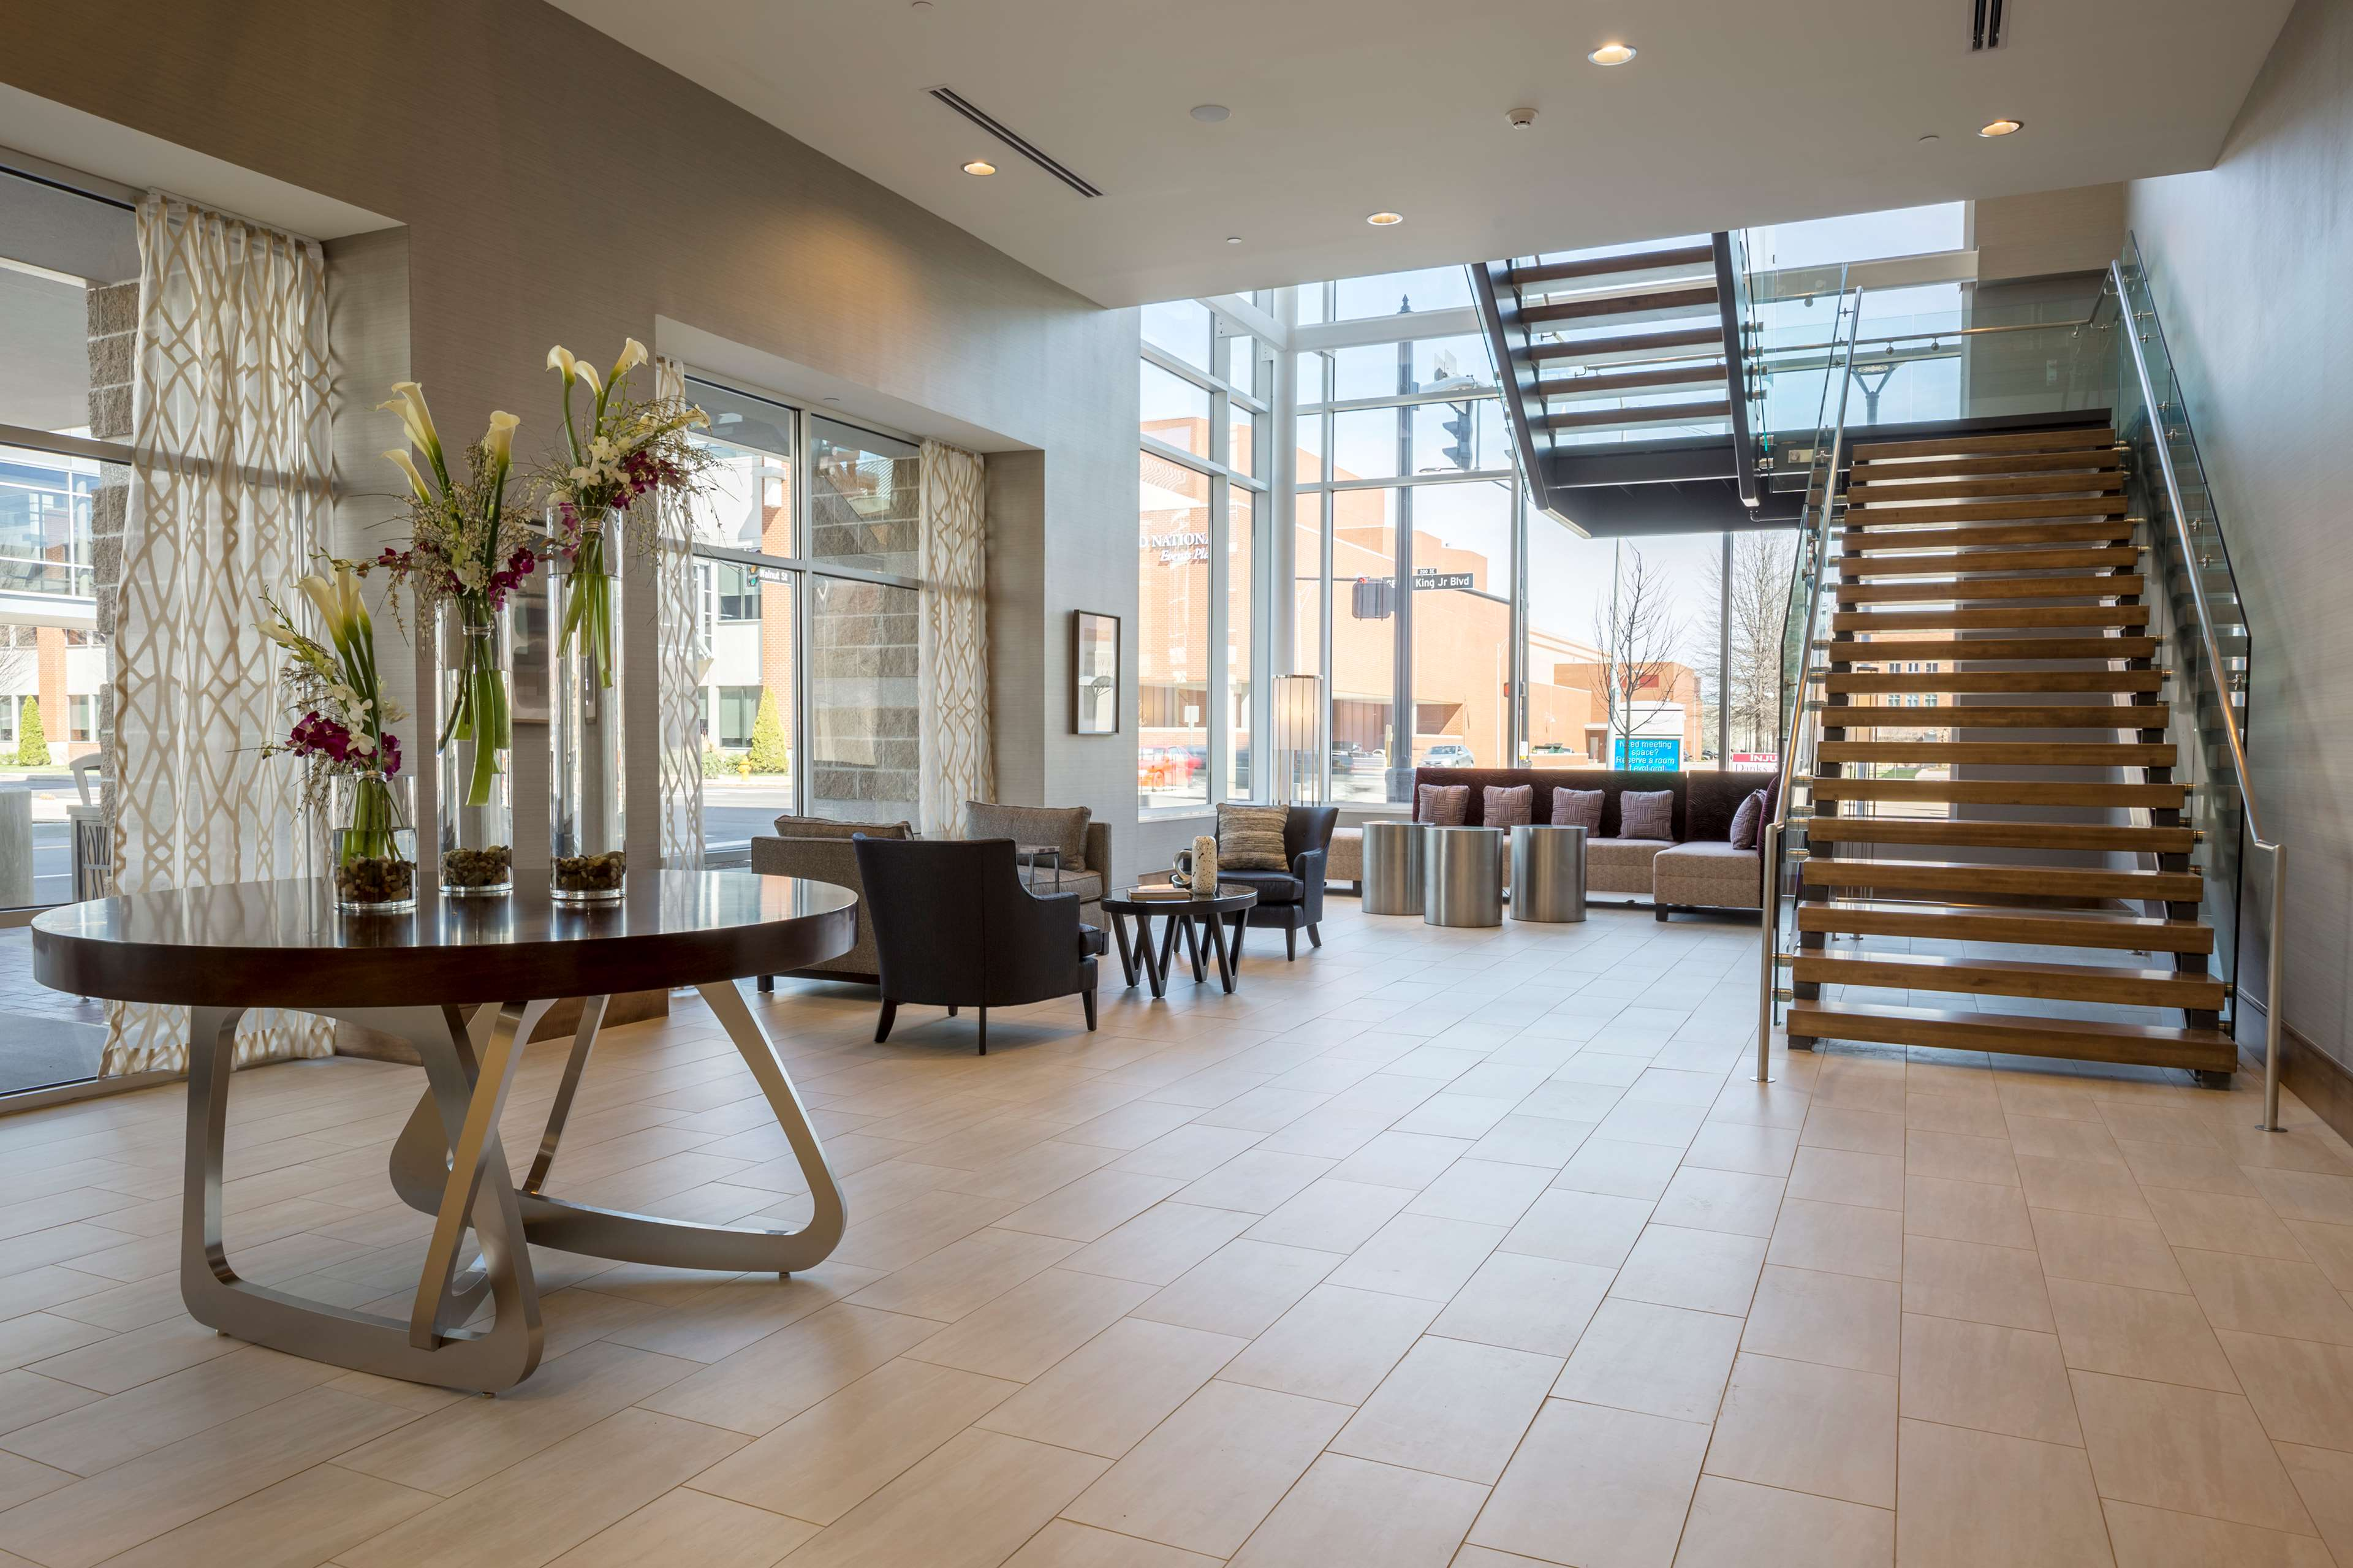 DoubleTree by Hilton Evansville image 9